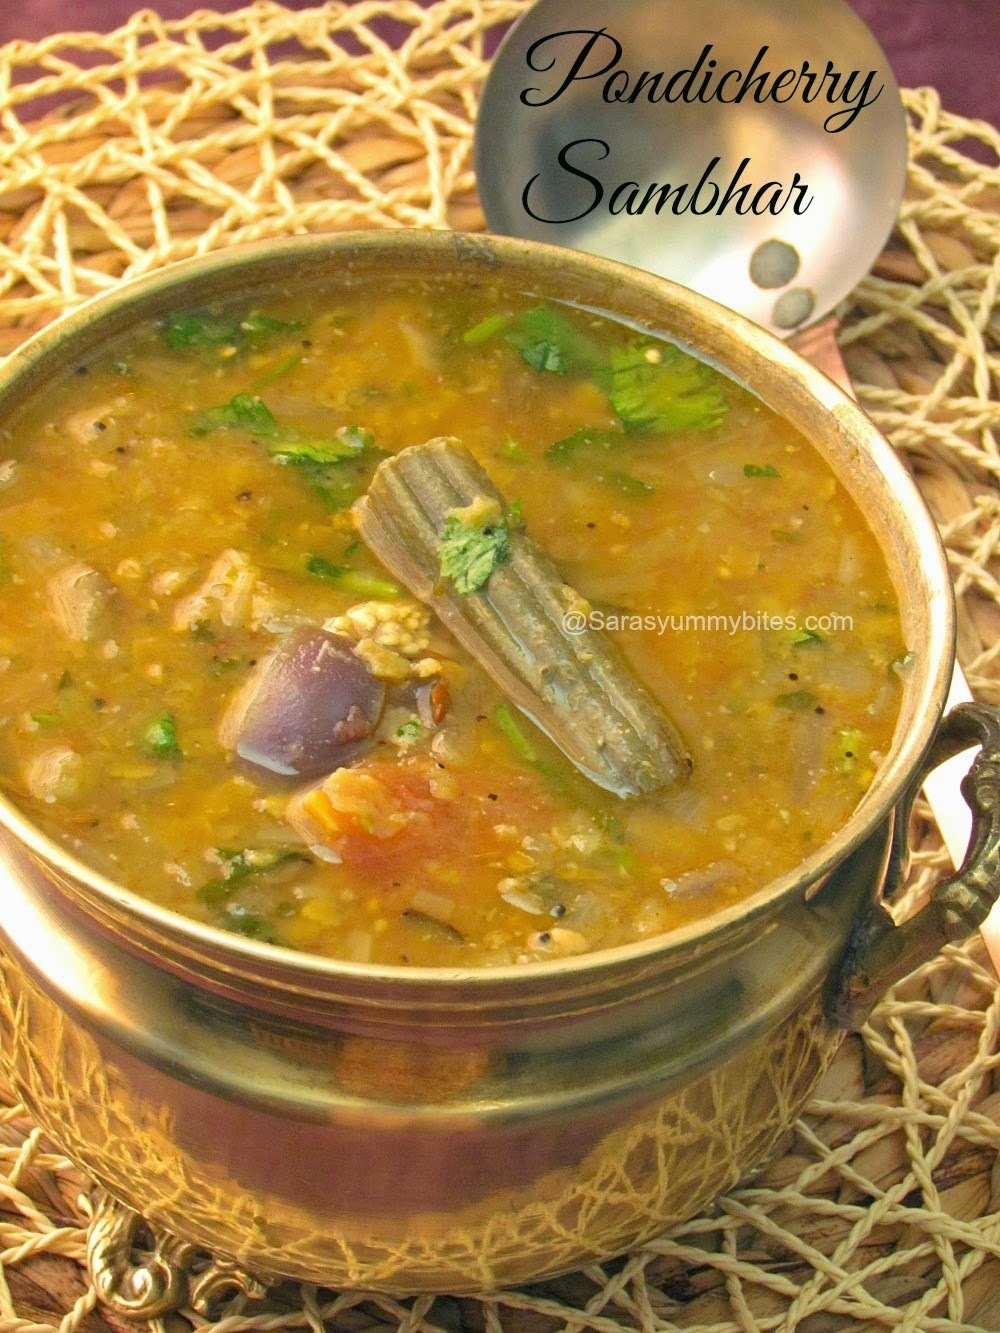 Puducherry Sambar / Pondicherry Sambhar